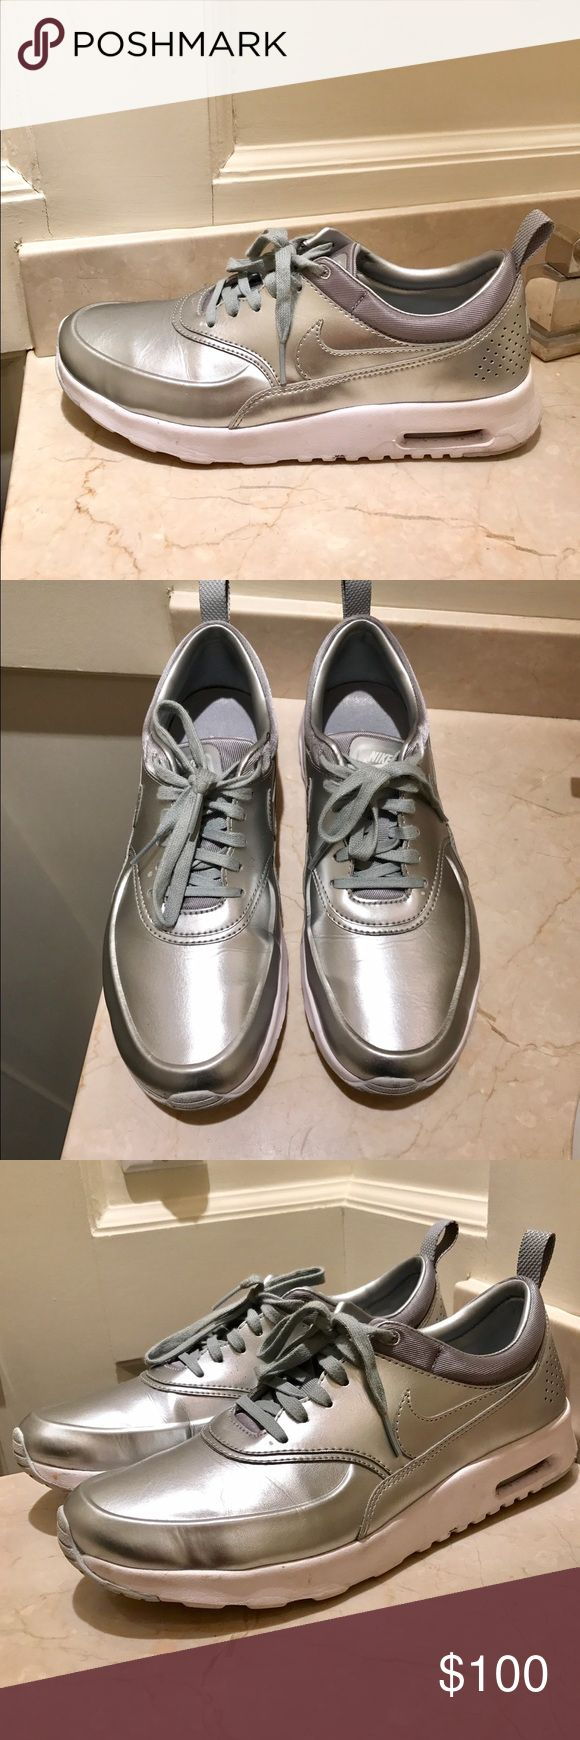 Nike Silver Air Max Sneaker Size 8.5 Nike Silver Air Max Sneaker Size 8.5. Worn a few times. In good condition Nike Shoes Sneakers